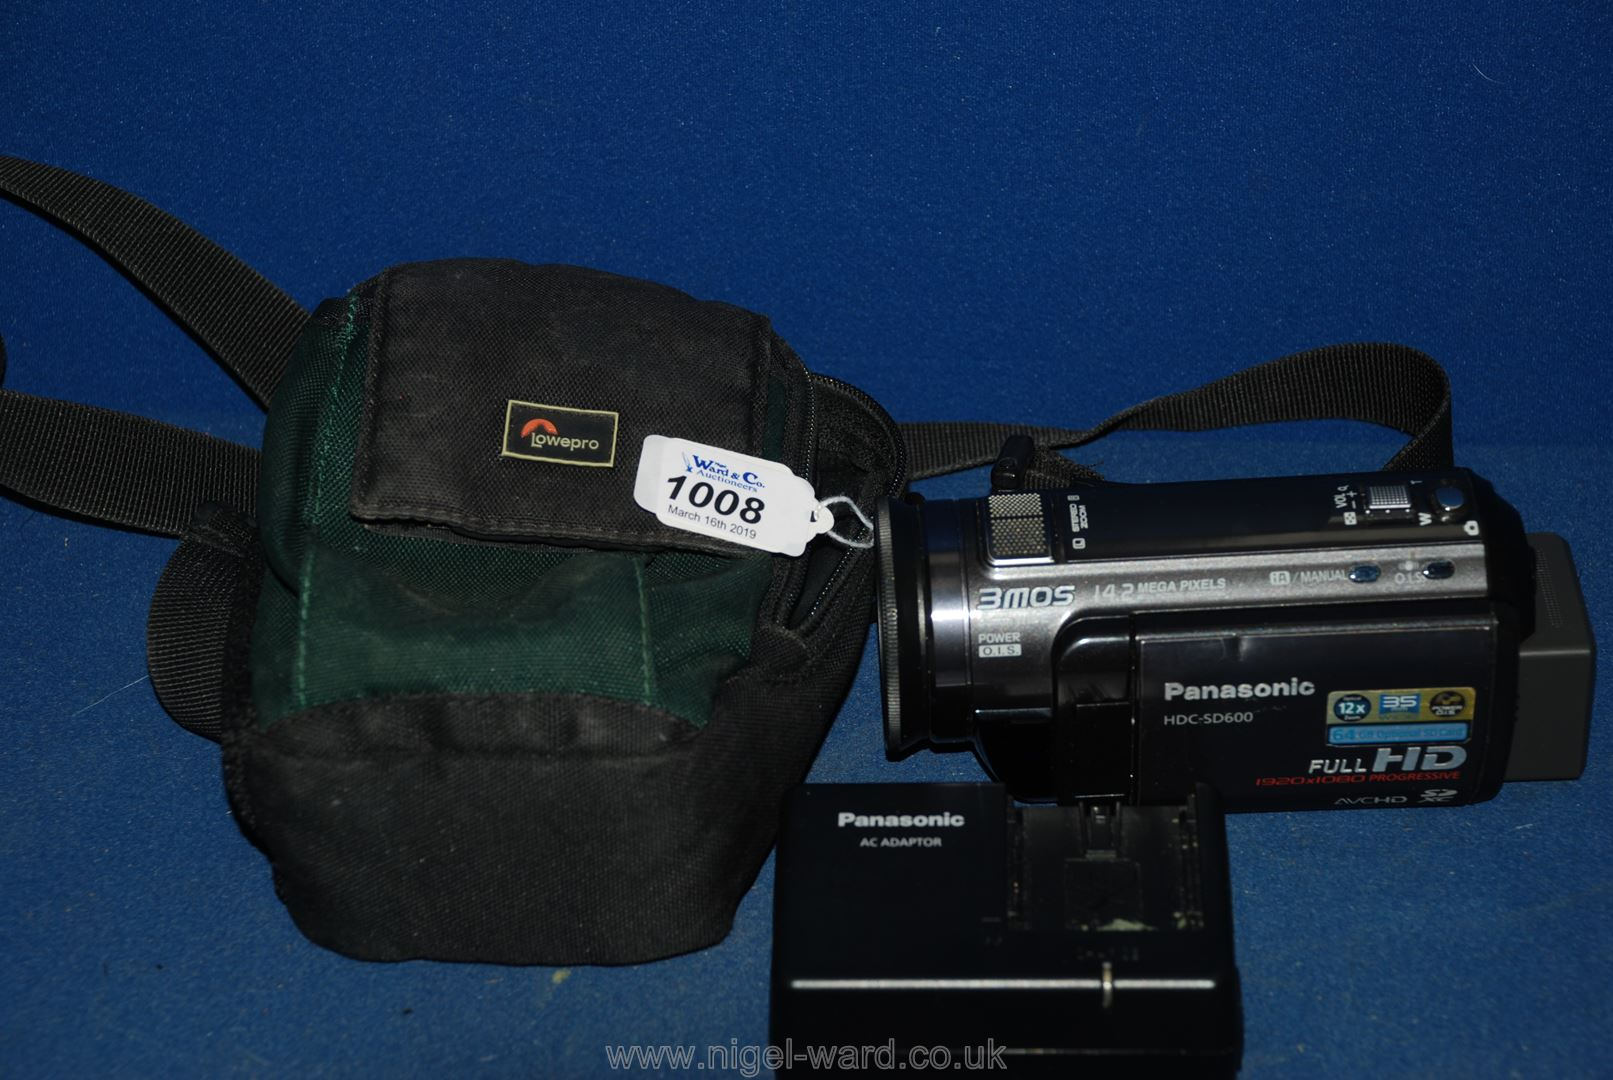 Lot 1008 - A Panasonic HDC SD600 Video Camera with case, battery and charger.